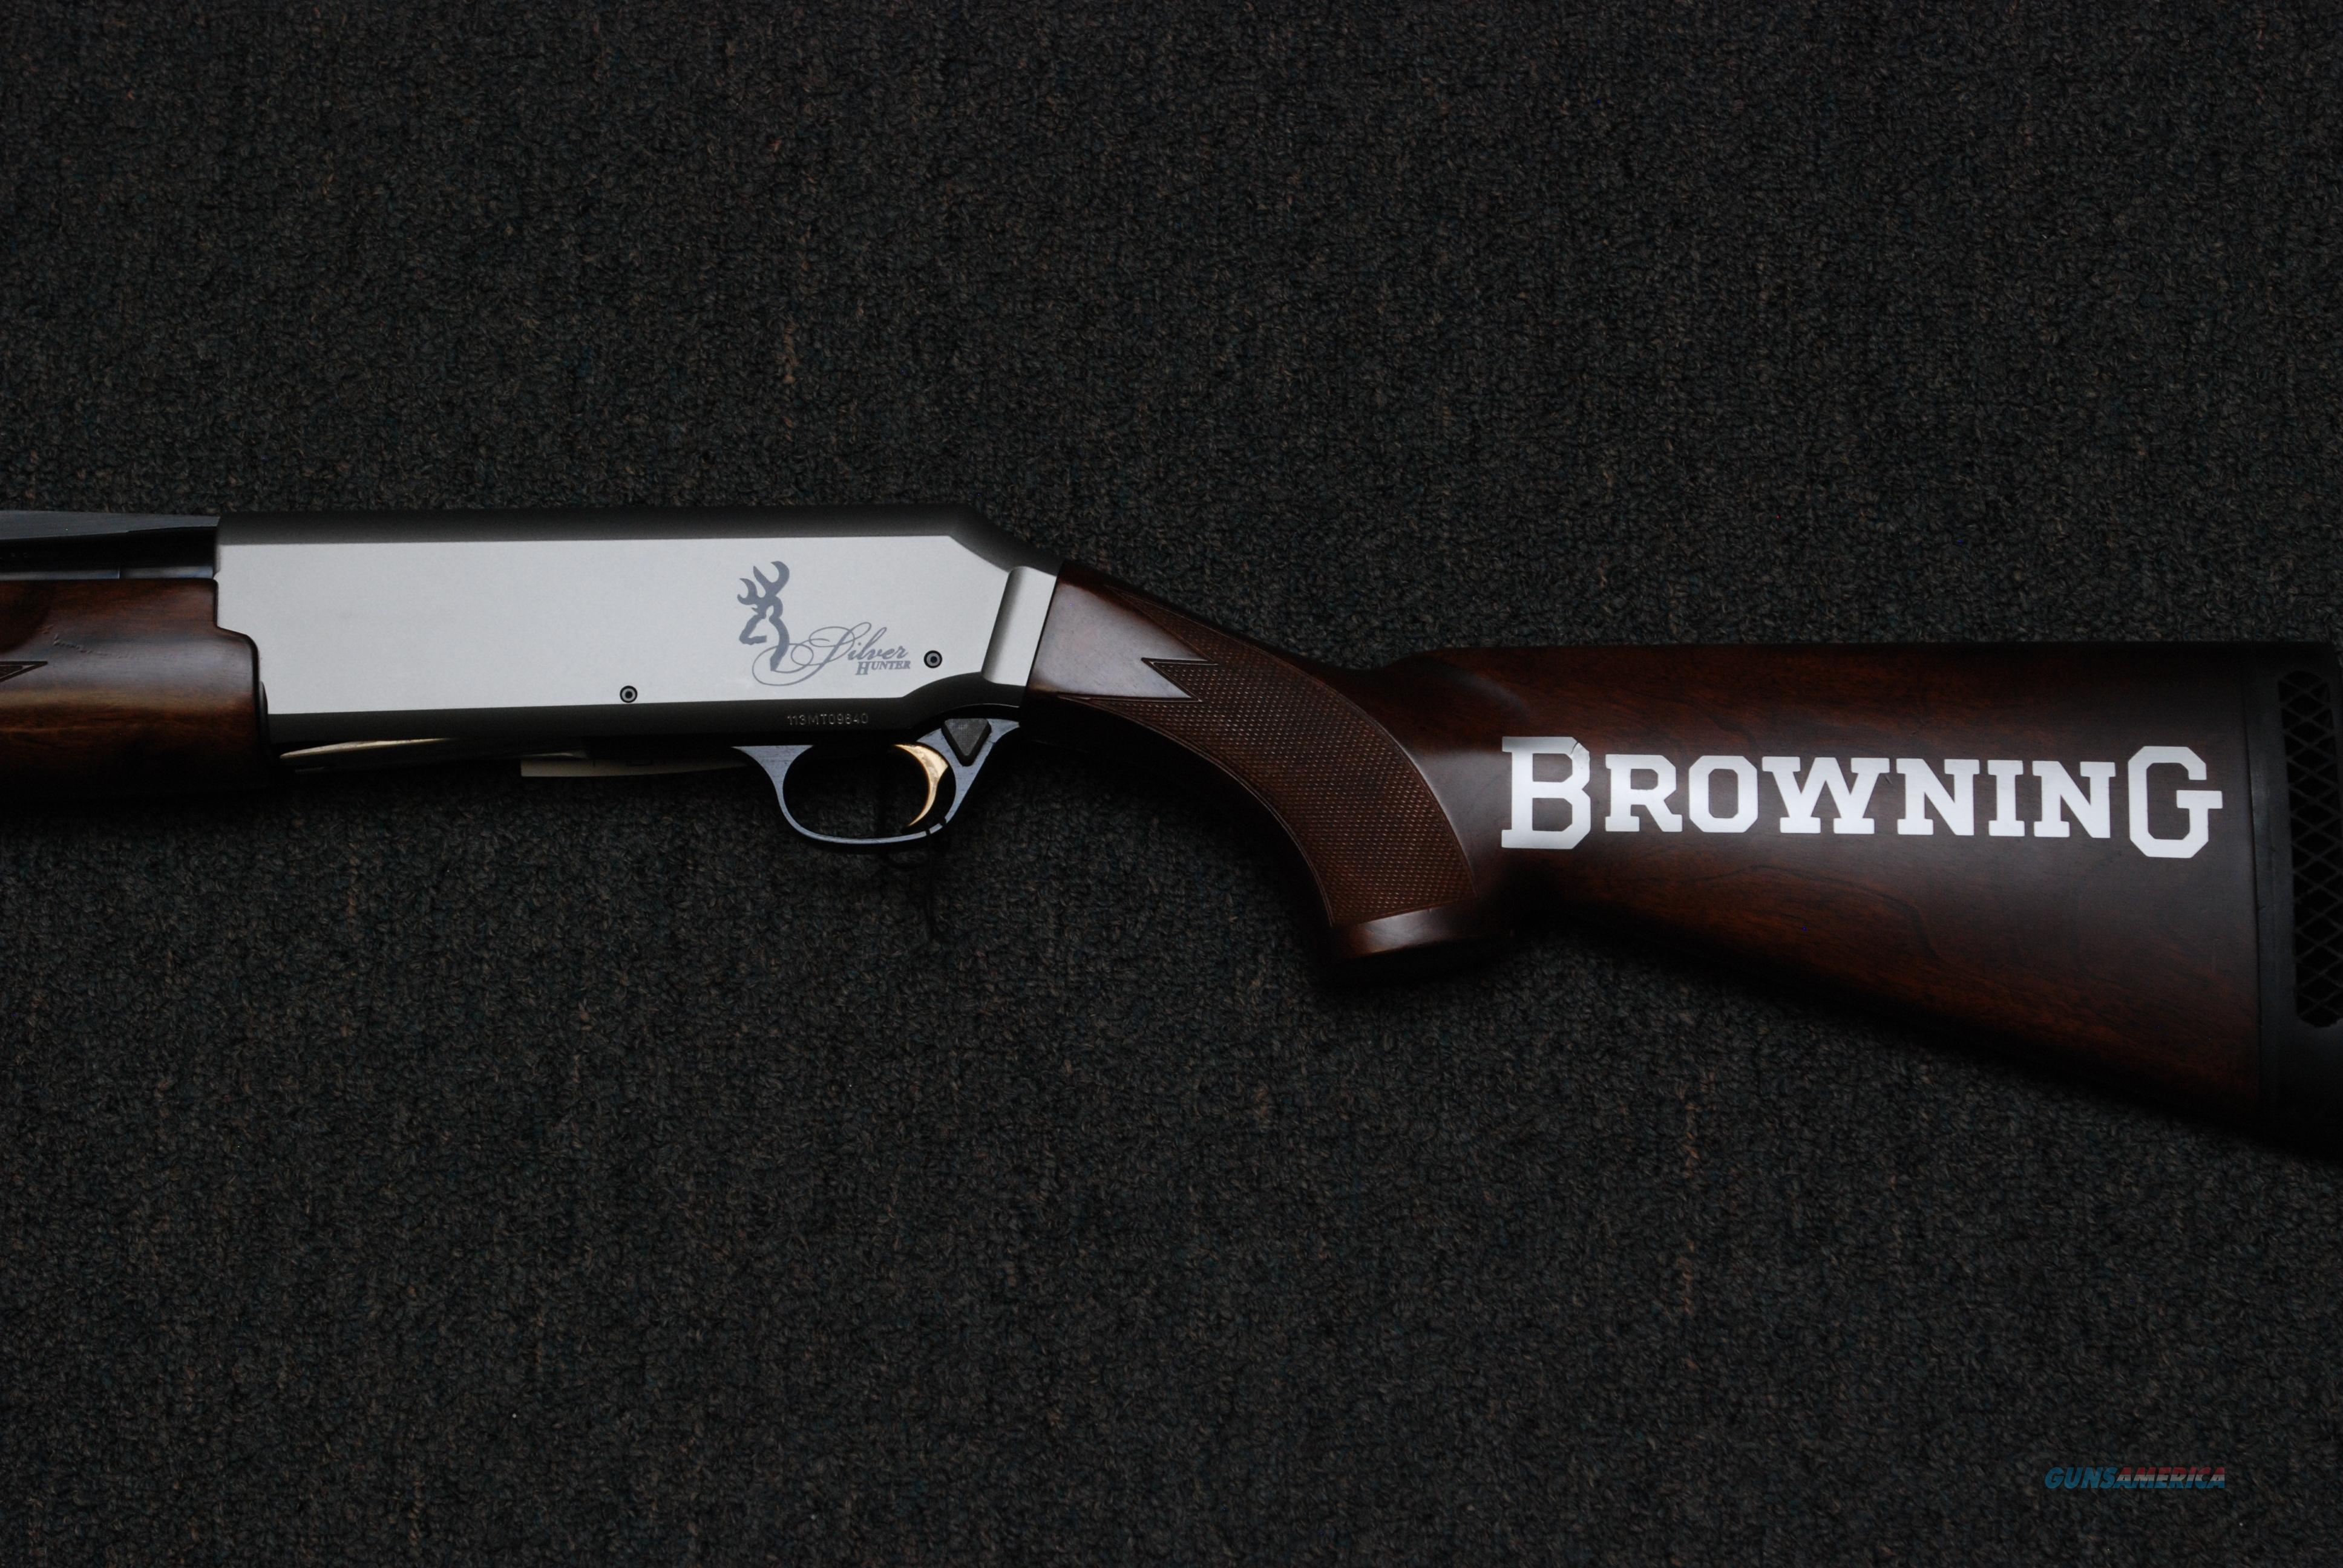 Browning Silver Hunter 12ga.  Guns > Shotguns > Browning Shotguns > Autoloaders > Hunting